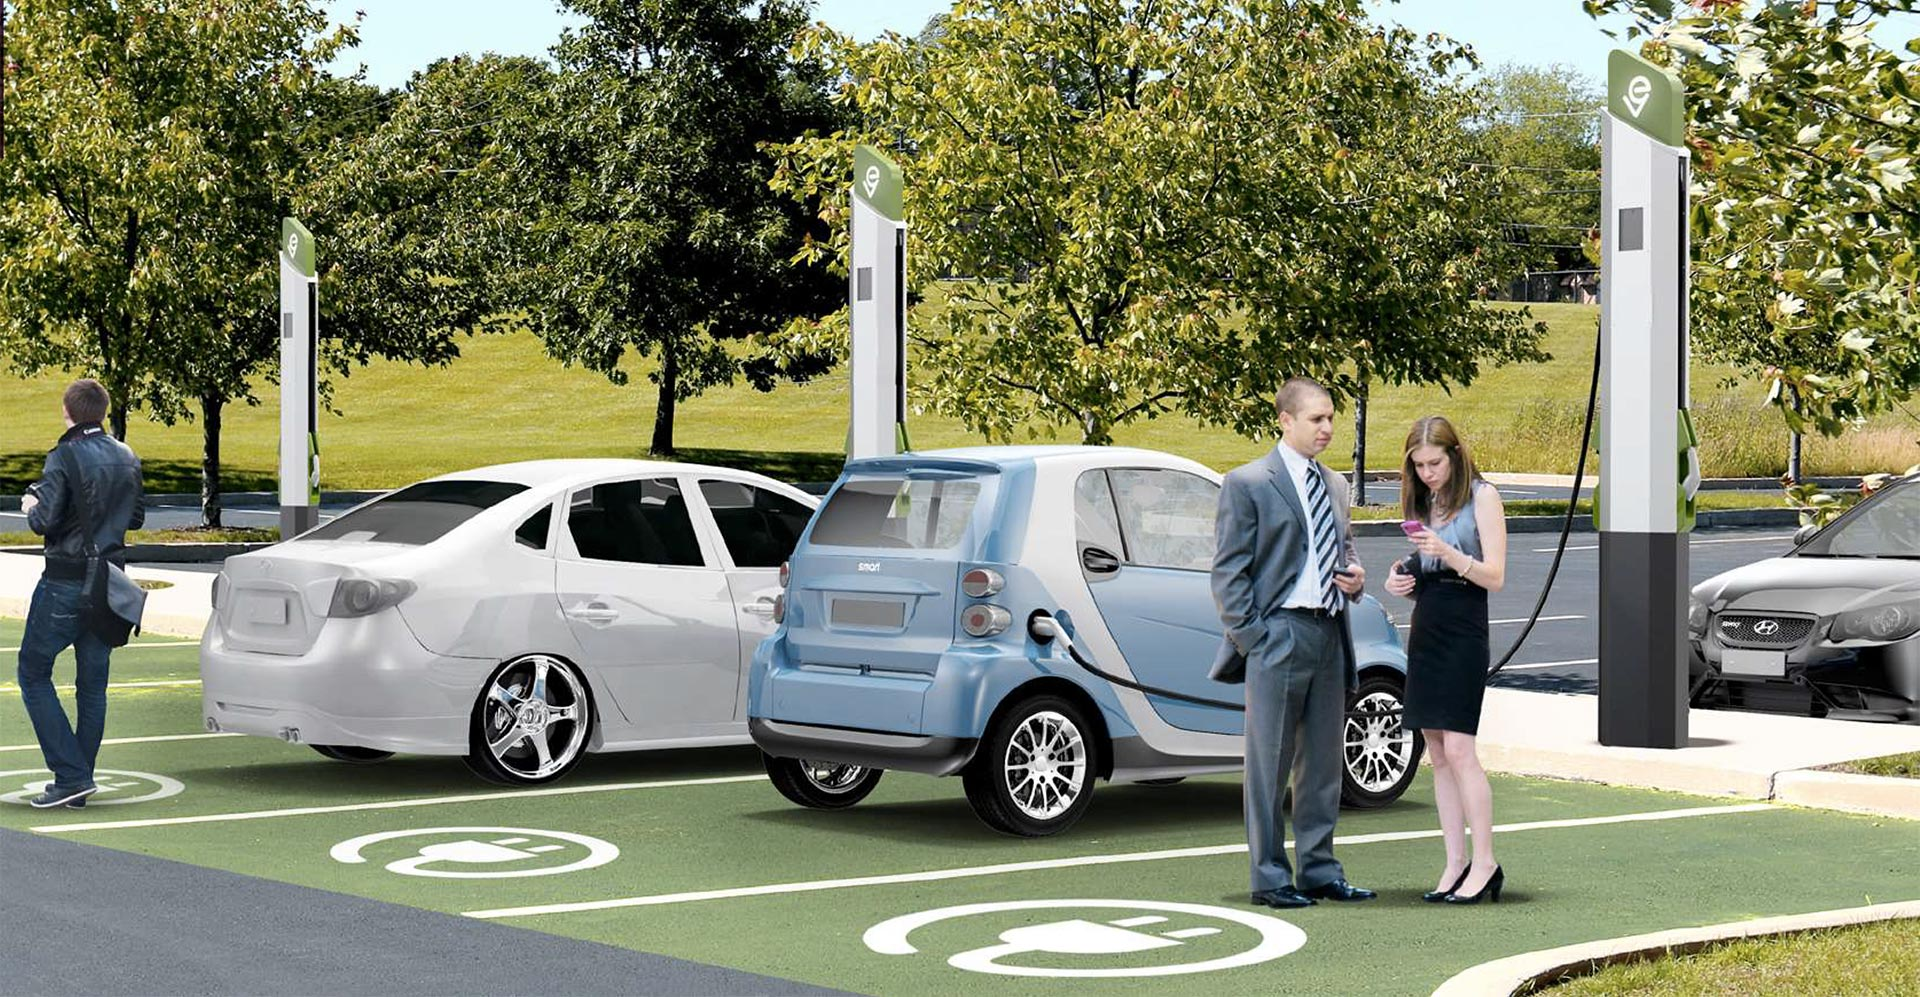 New generation of level 2 charging stations for electric vehicles in parking areas